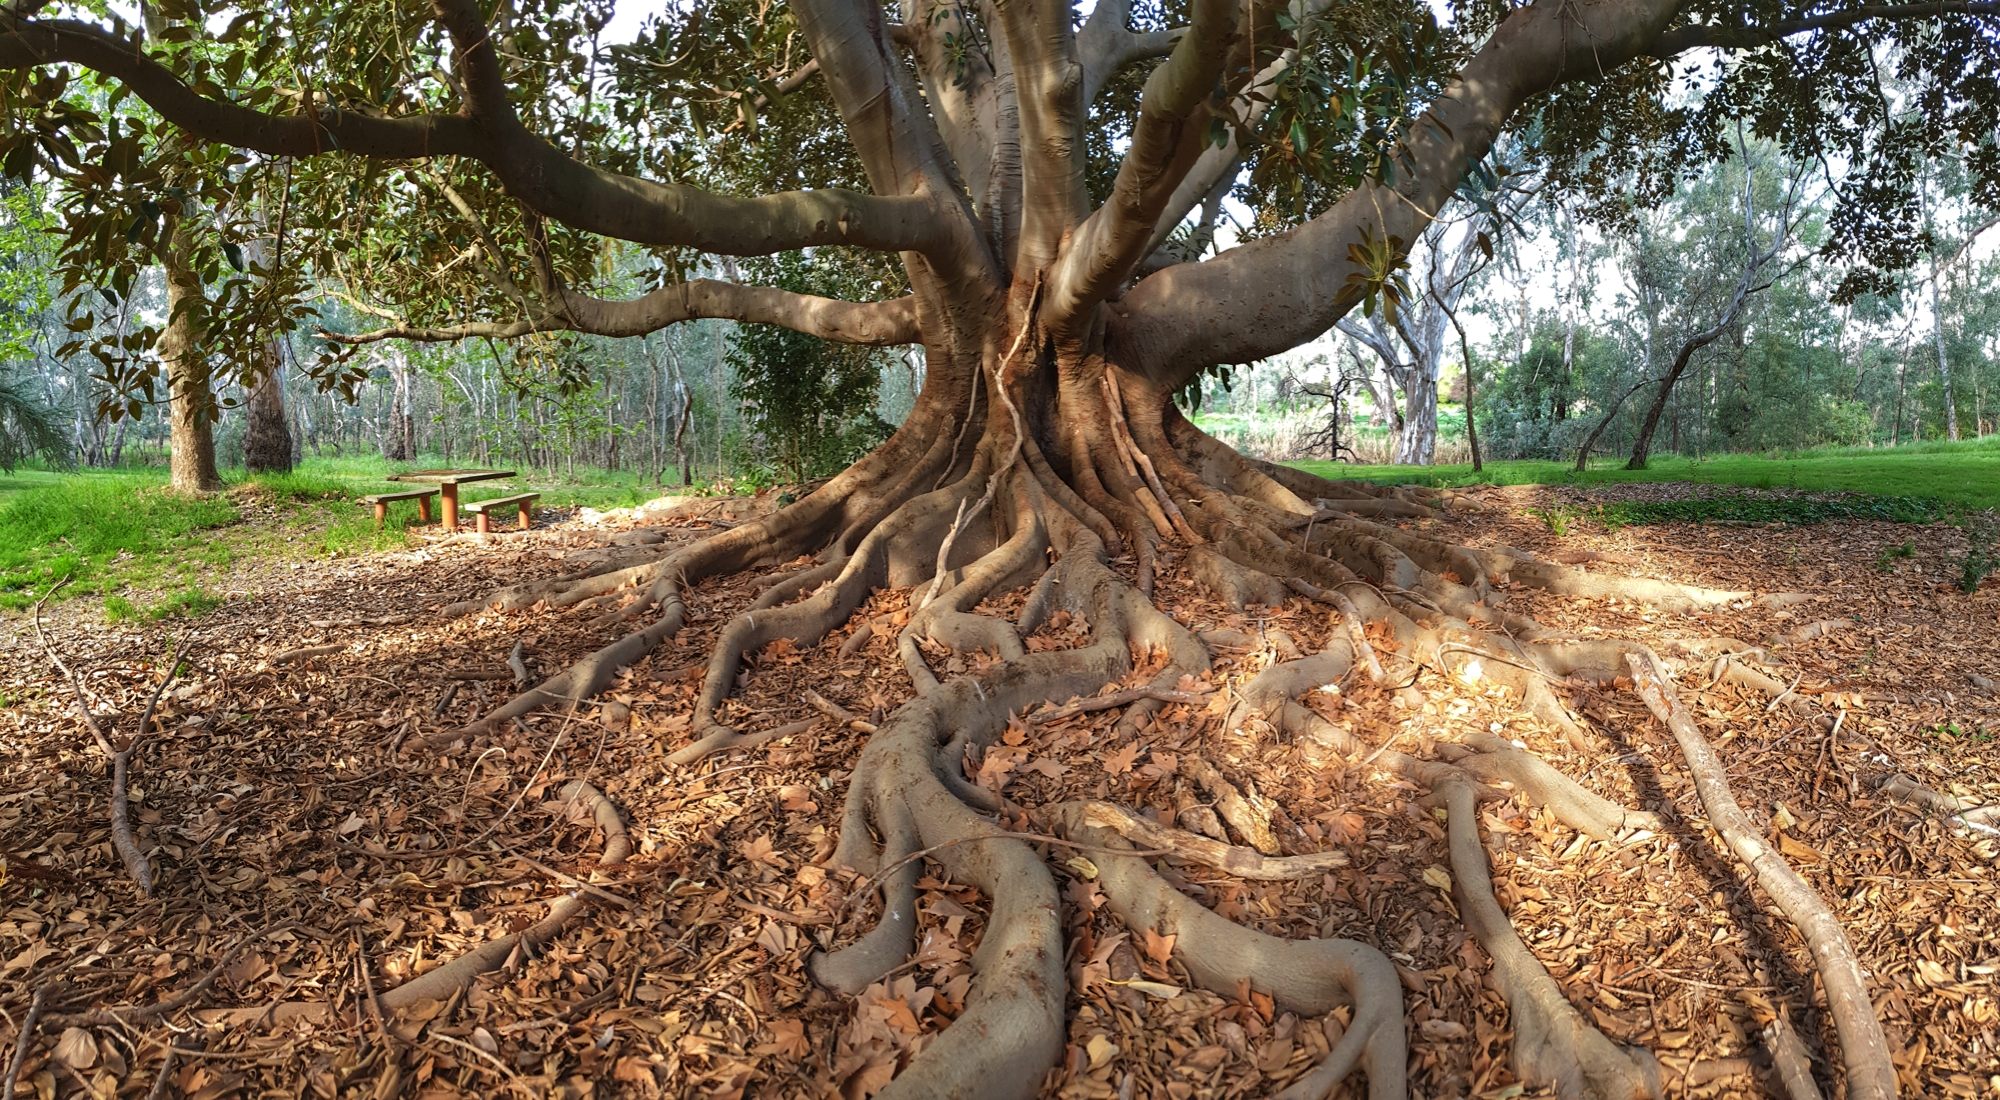 A tree with large, sinuous roots.